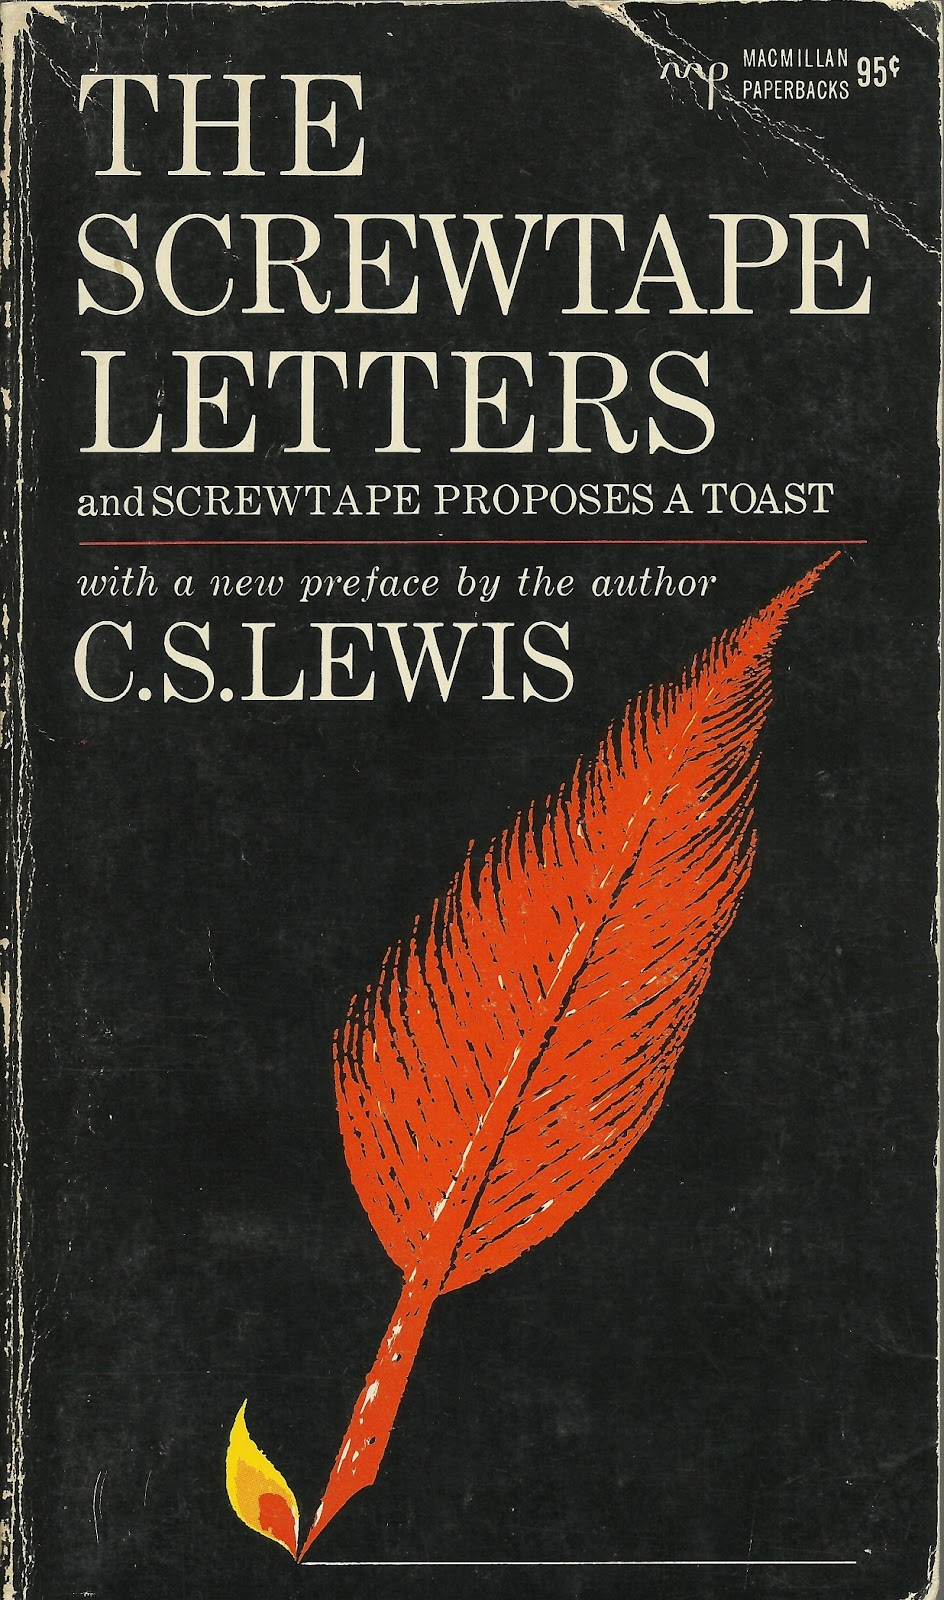 Screwtape Letters Book Diary of a madman: the screwtape letters